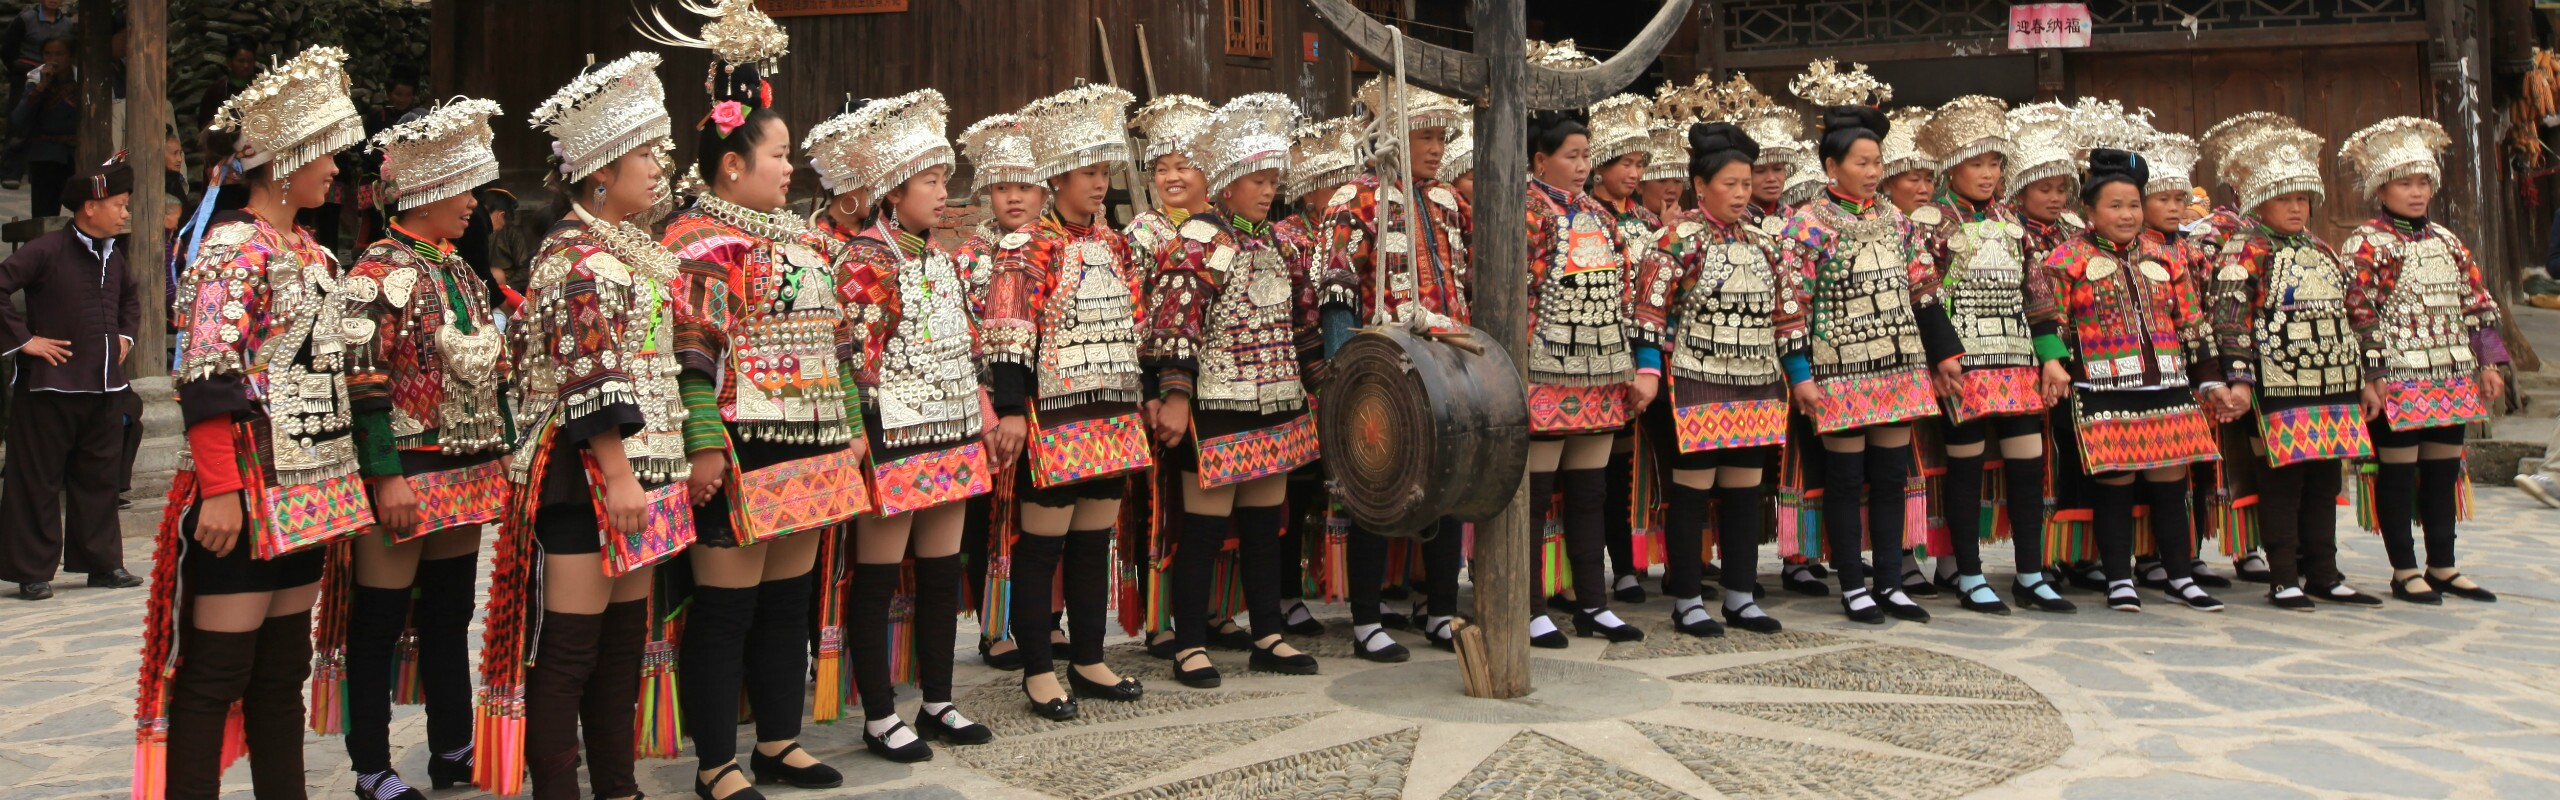 Minority Discovery in Zhangjiajie,Fenghuang and Guizhou